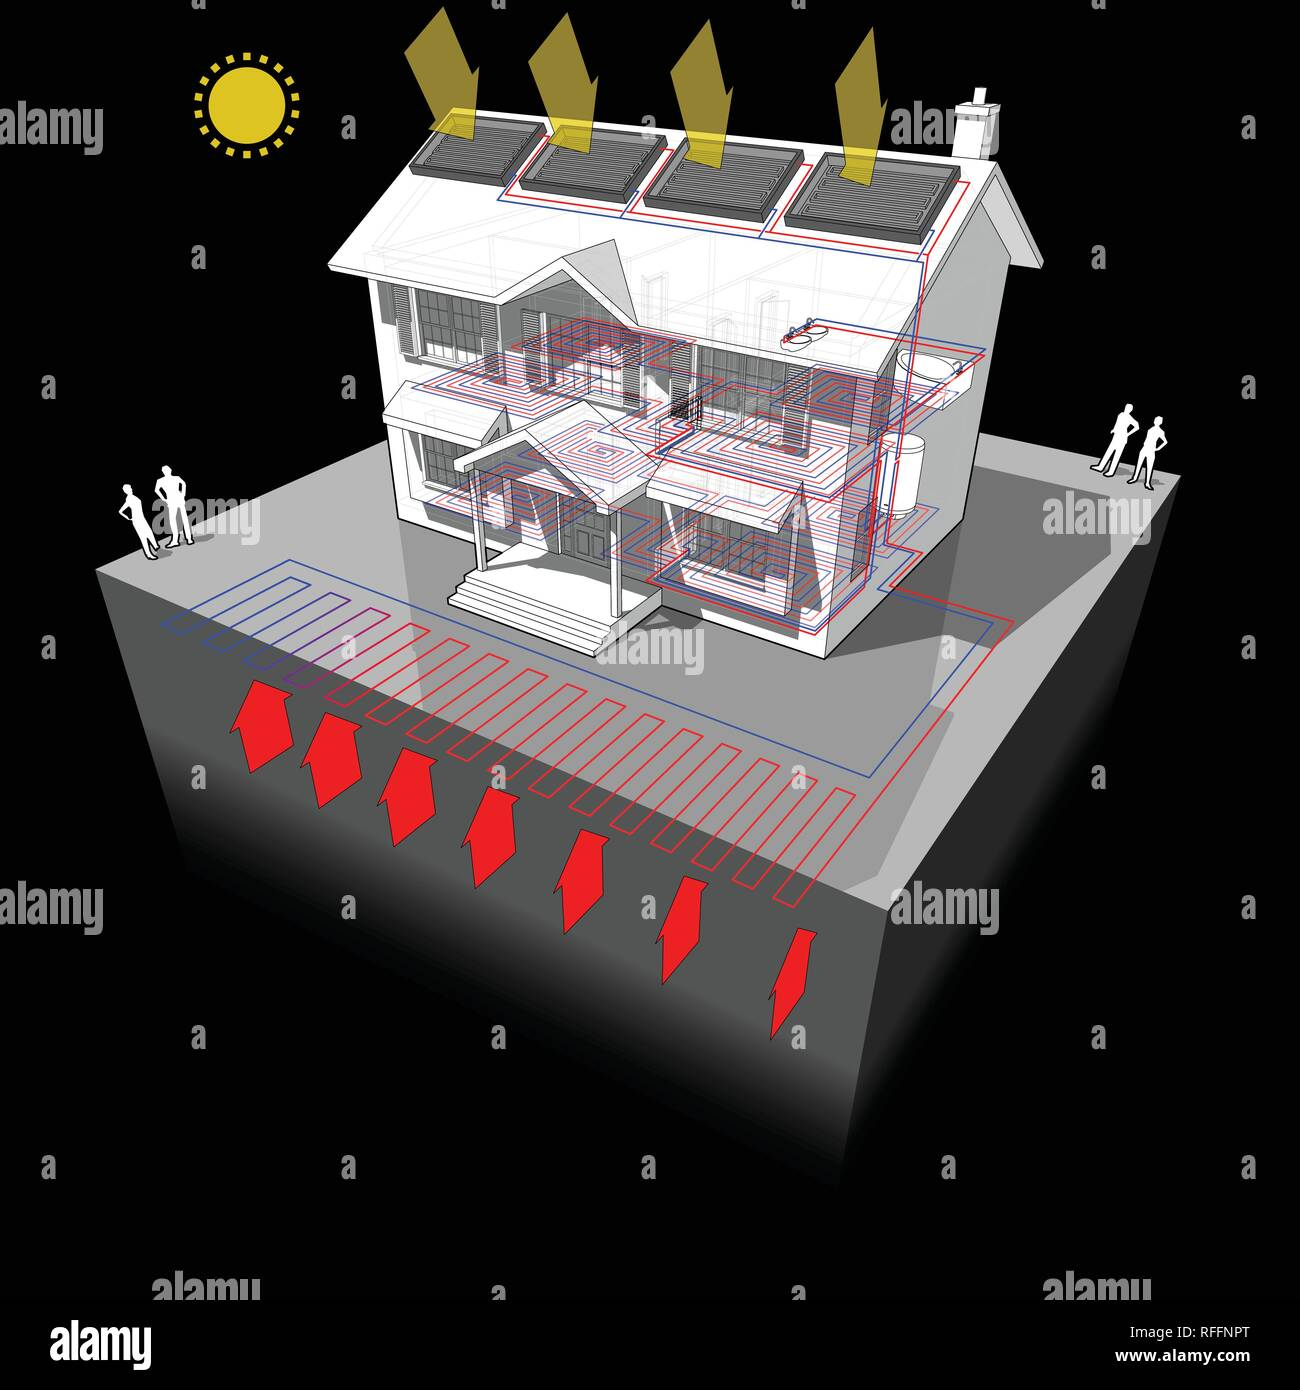 diagram of a classic colonial house with planar or areal ground source heat pump and solar panels on the roof as source of energy for heating in floor - Stock Vector